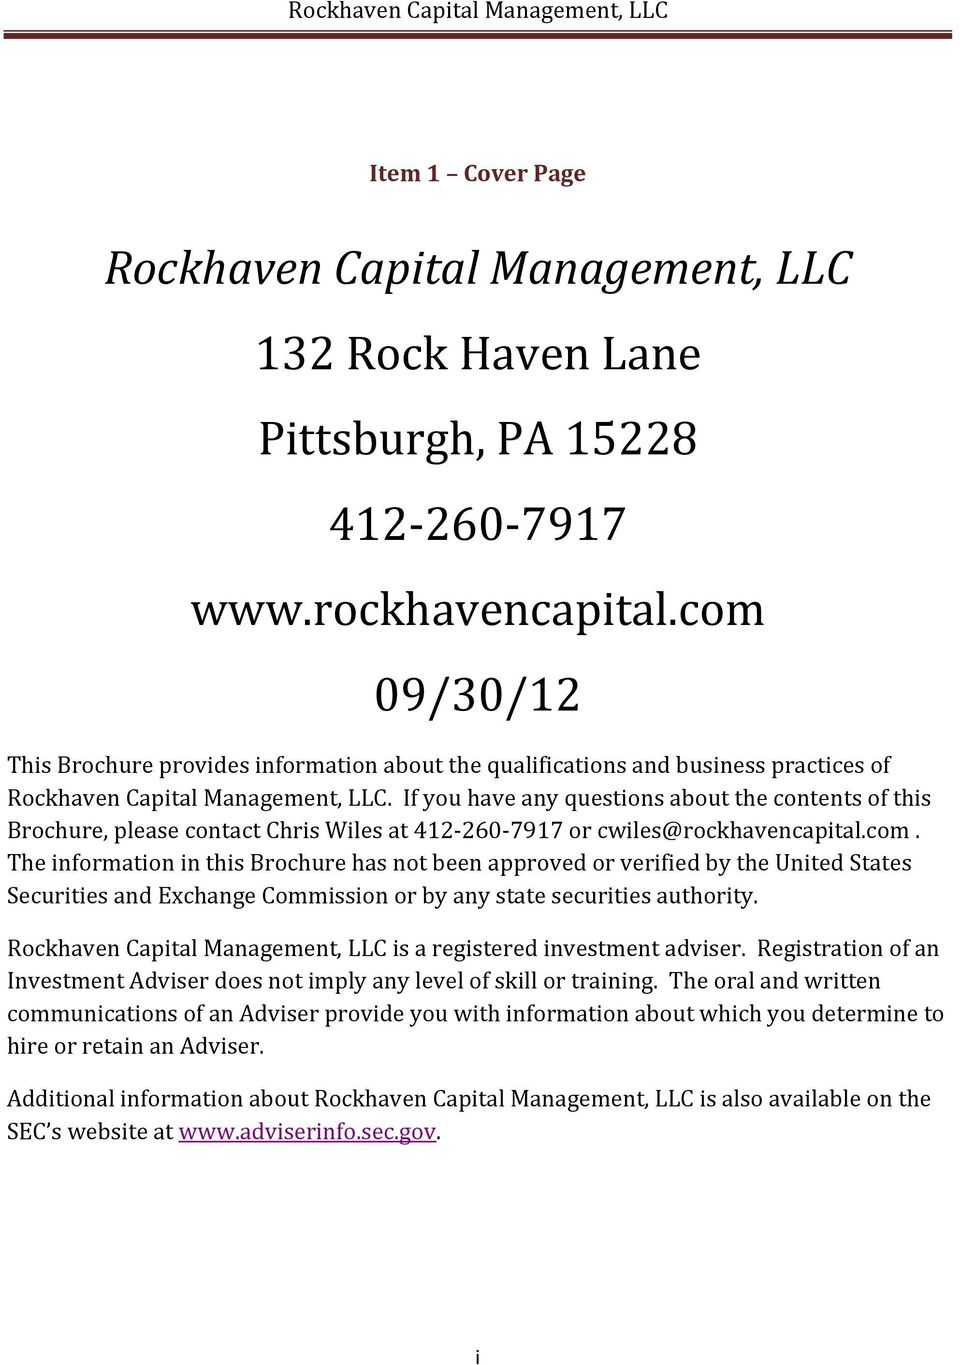 If you have any questions about the contents of this Brochure, please contact Chris Wiles at 412-260- 7917 or cwiles@rockhavencapital.com.